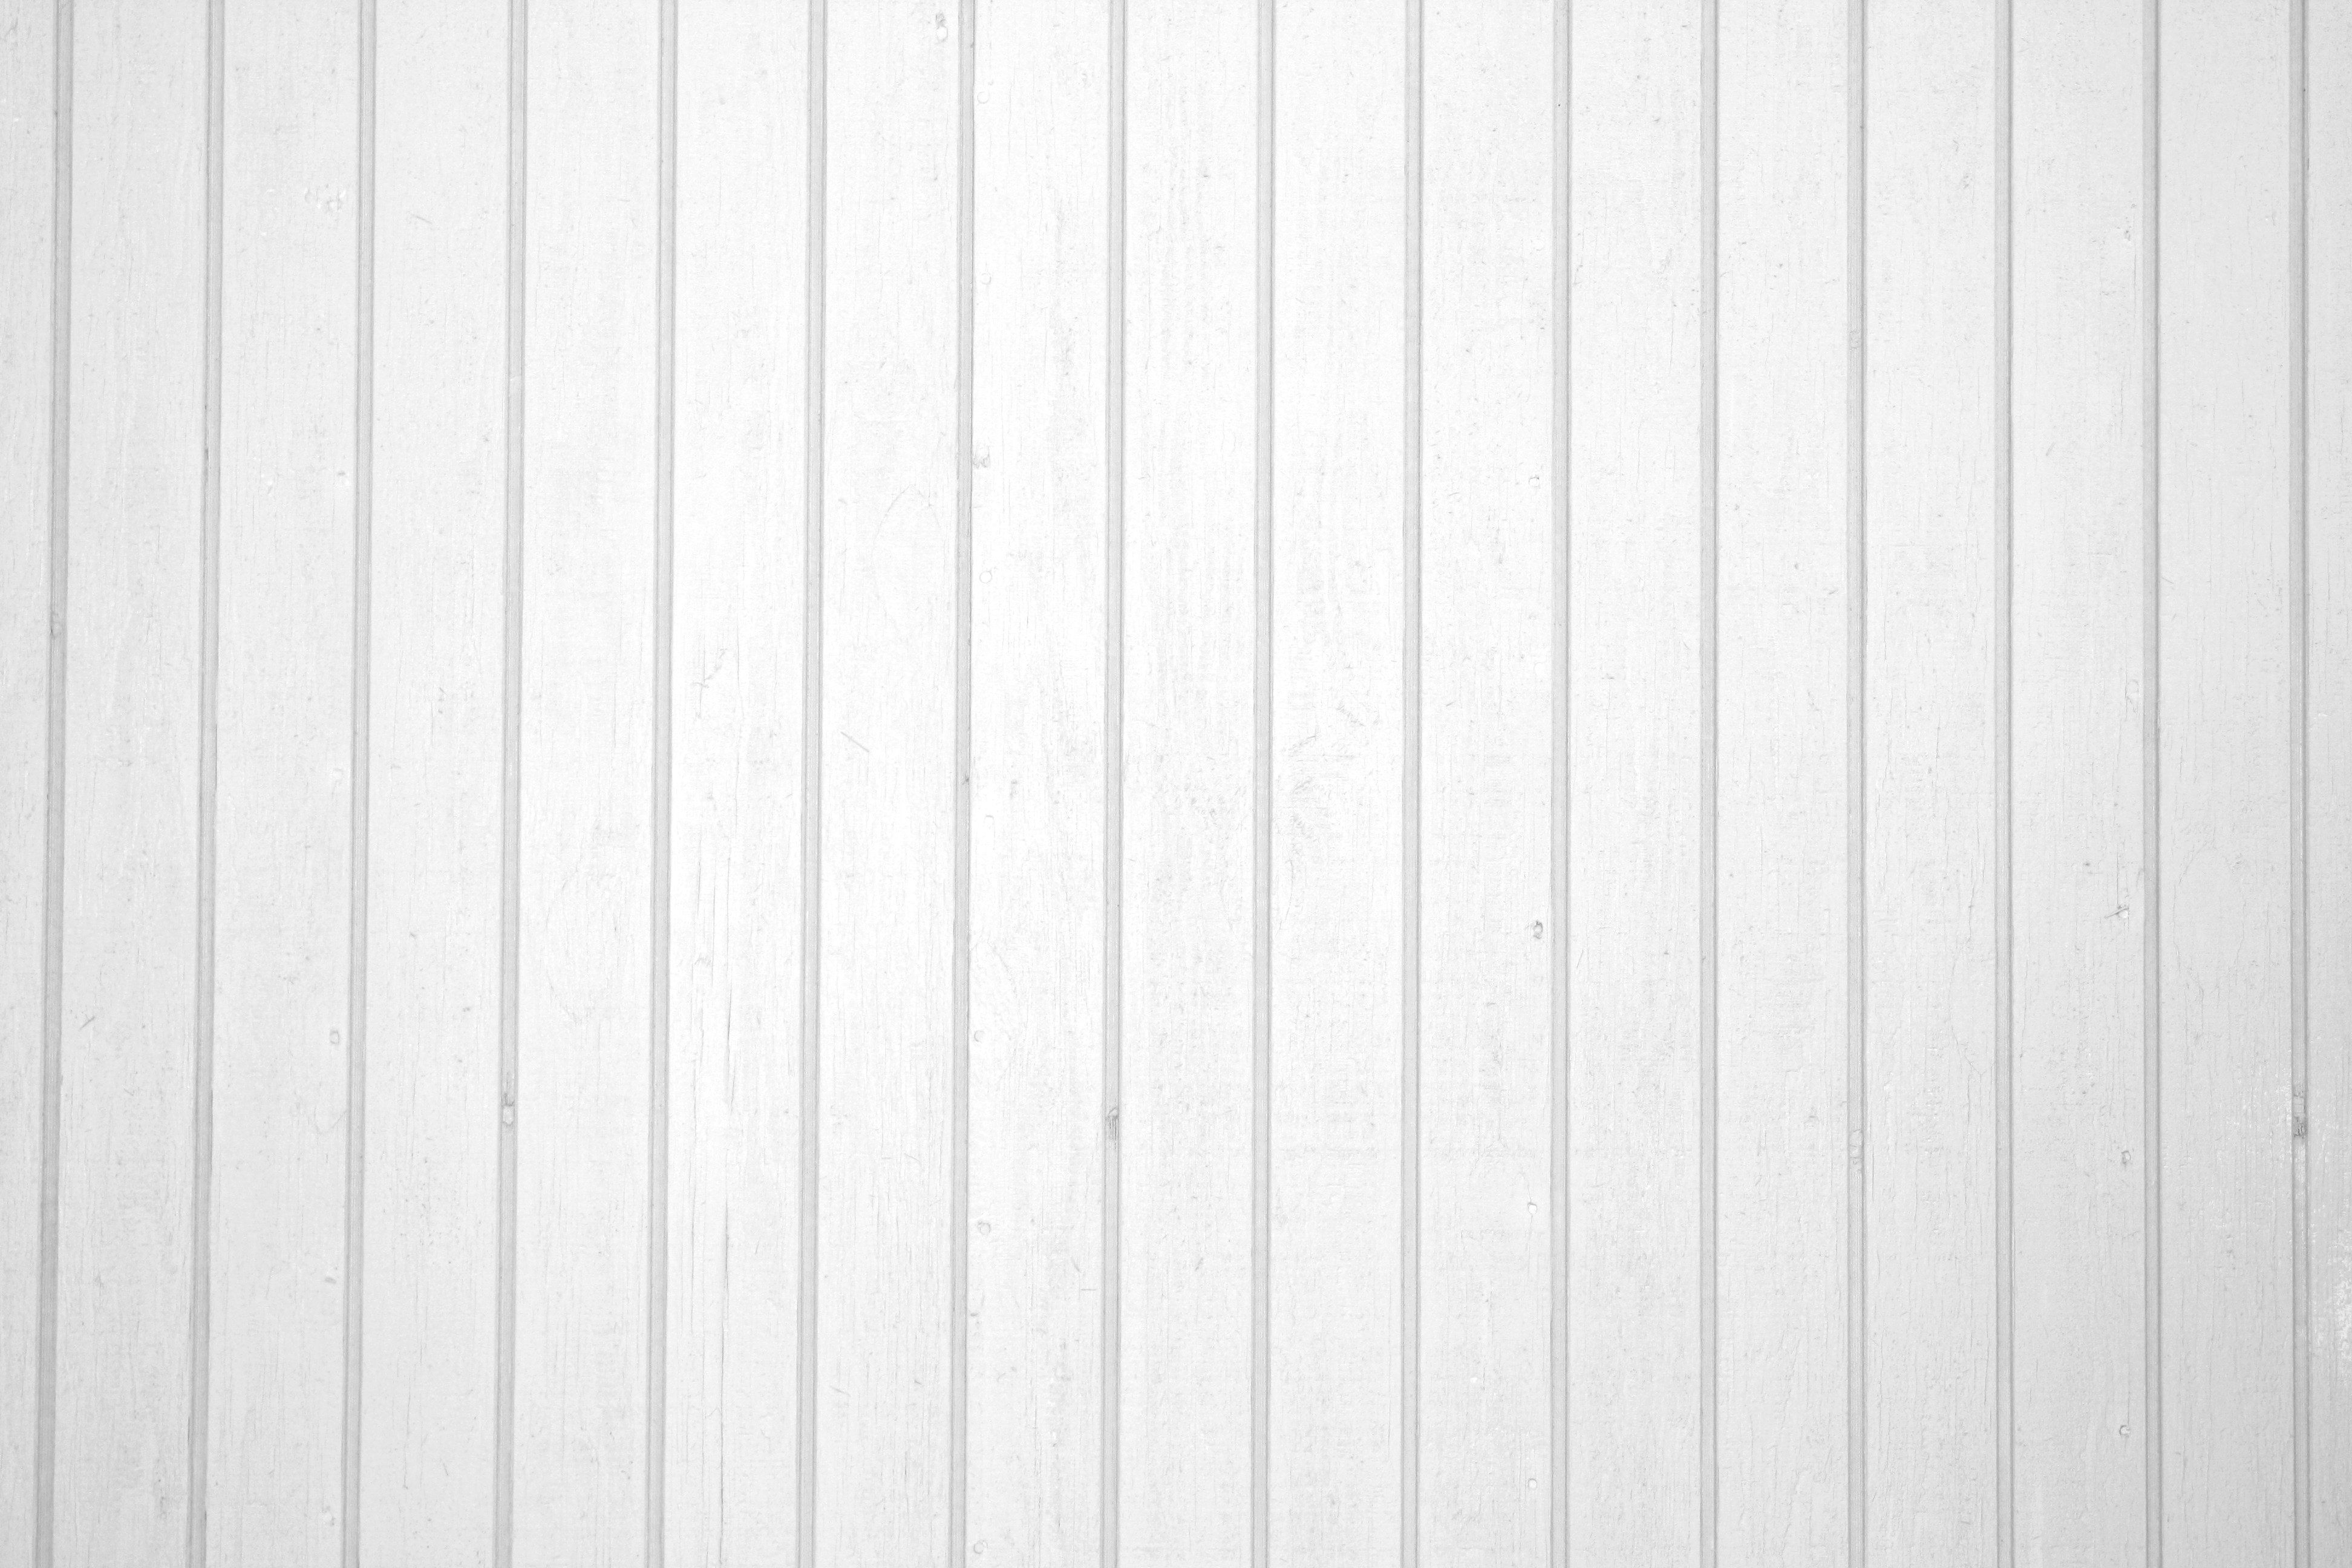 White Vertical Siding Or Wall Paneling Texture Free High Resolution